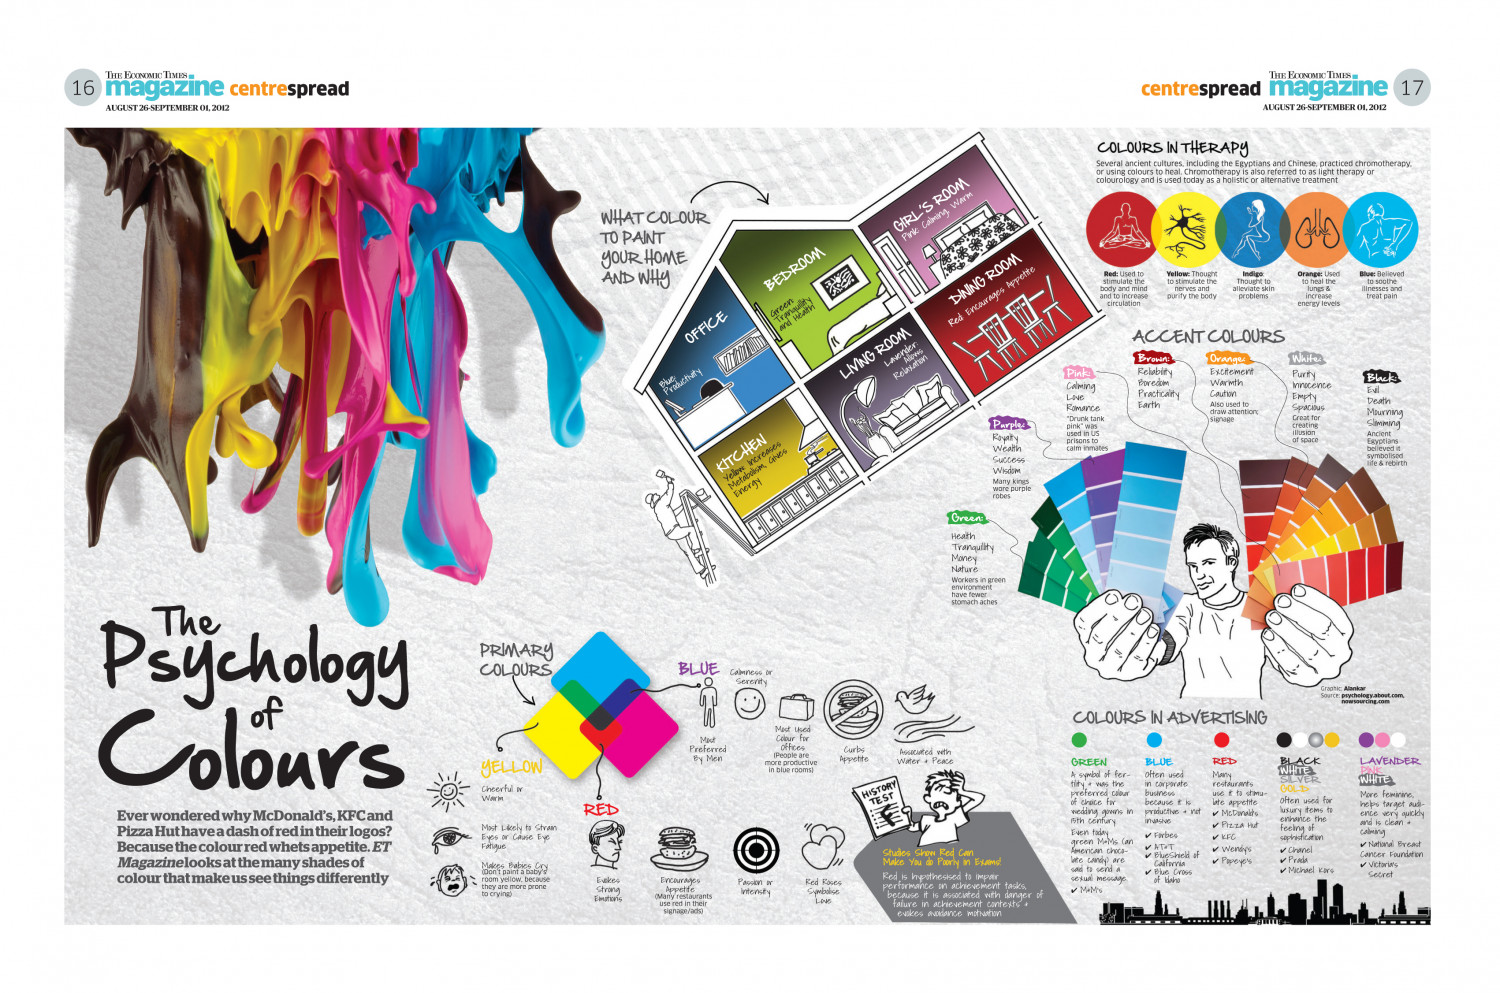 The Psychology of Colors Infographic